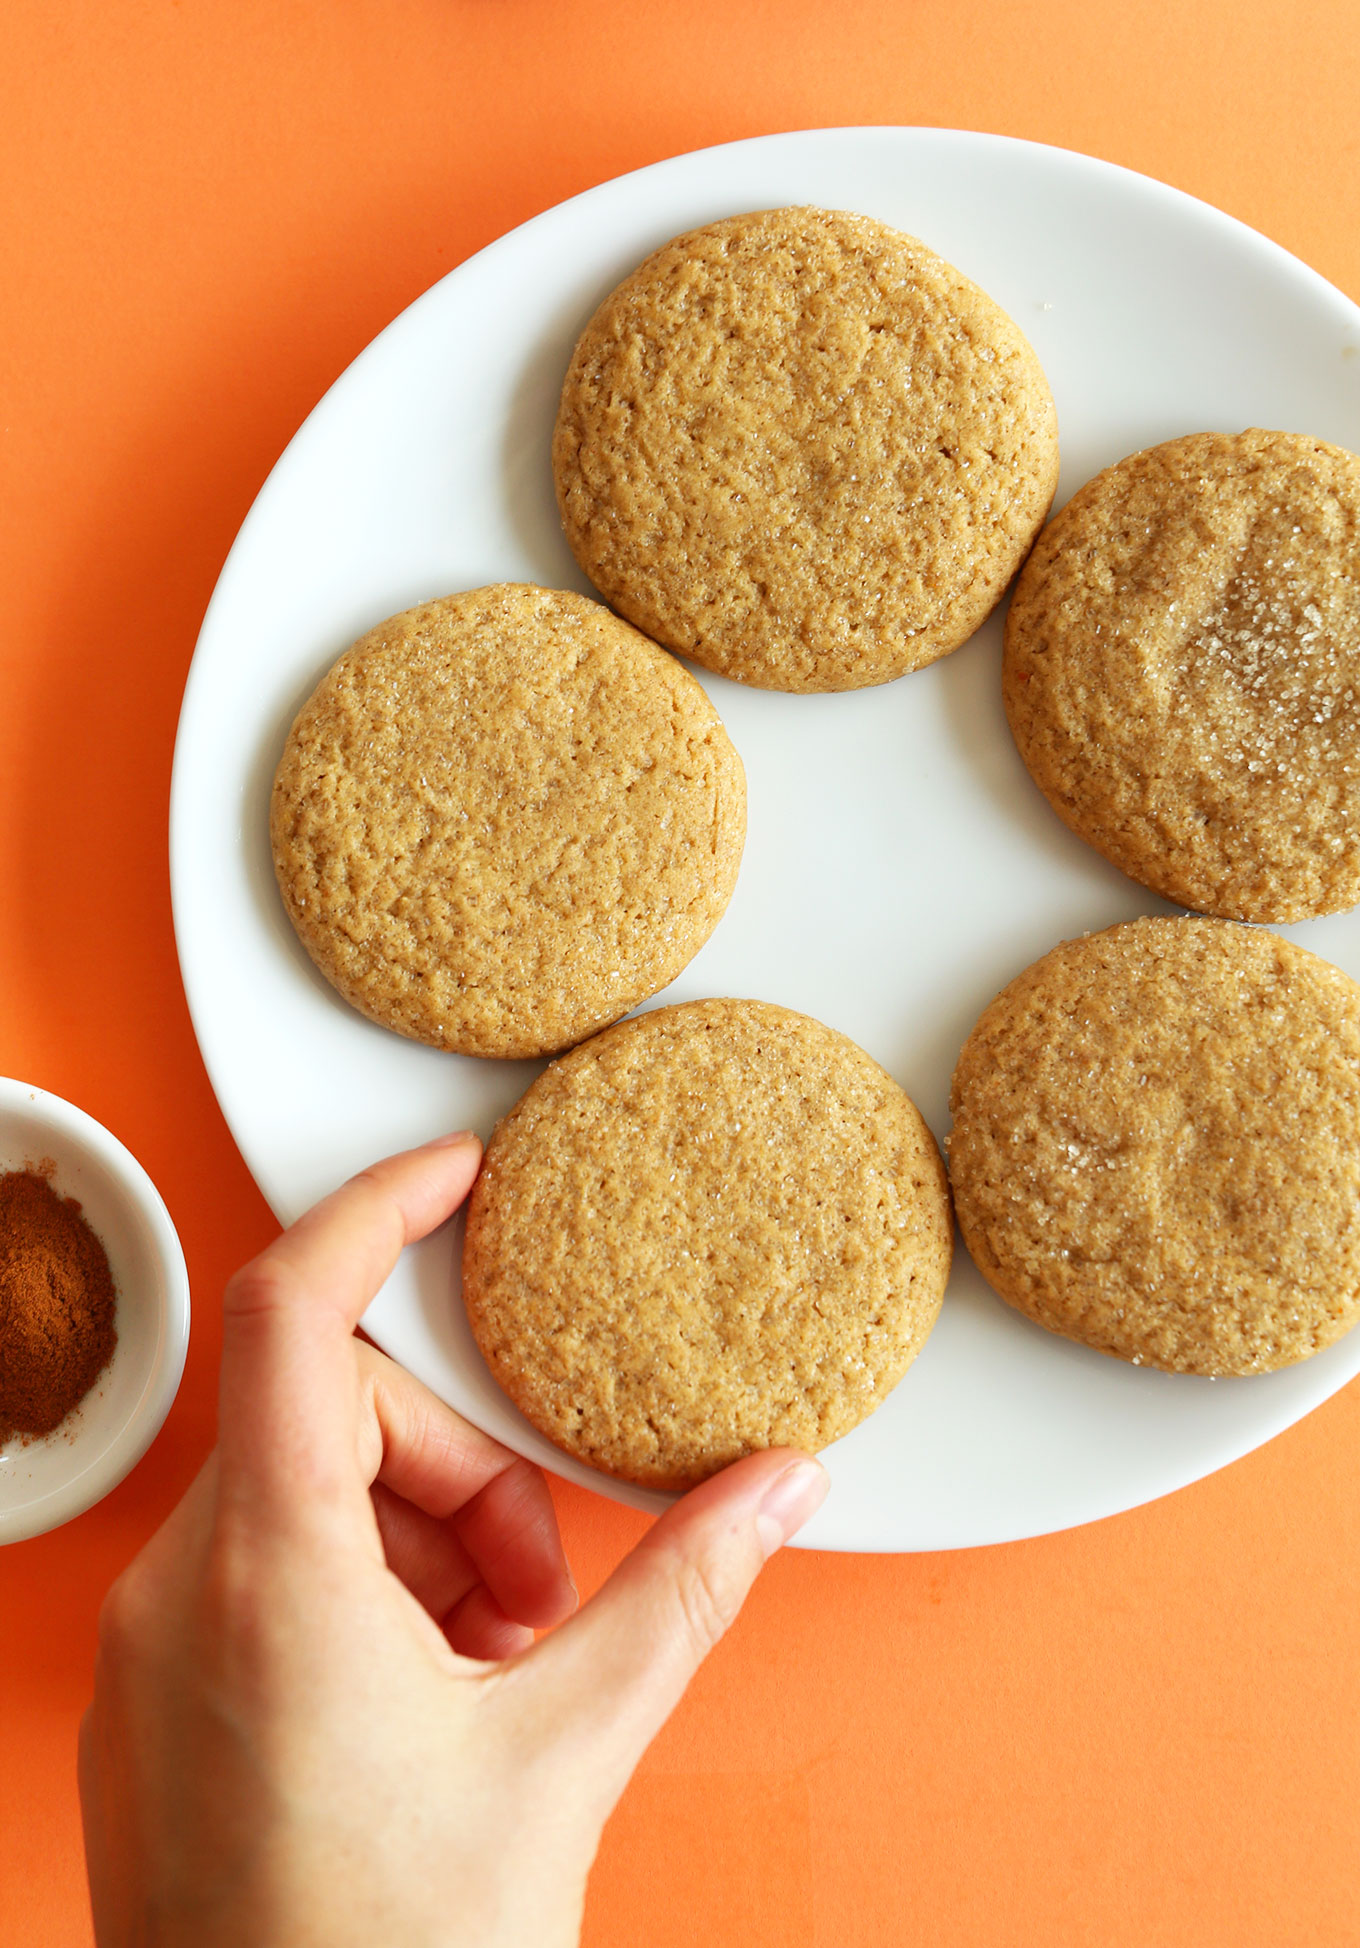 Grabbing a Vegan Pumpkin Sugar Cookie from a plate